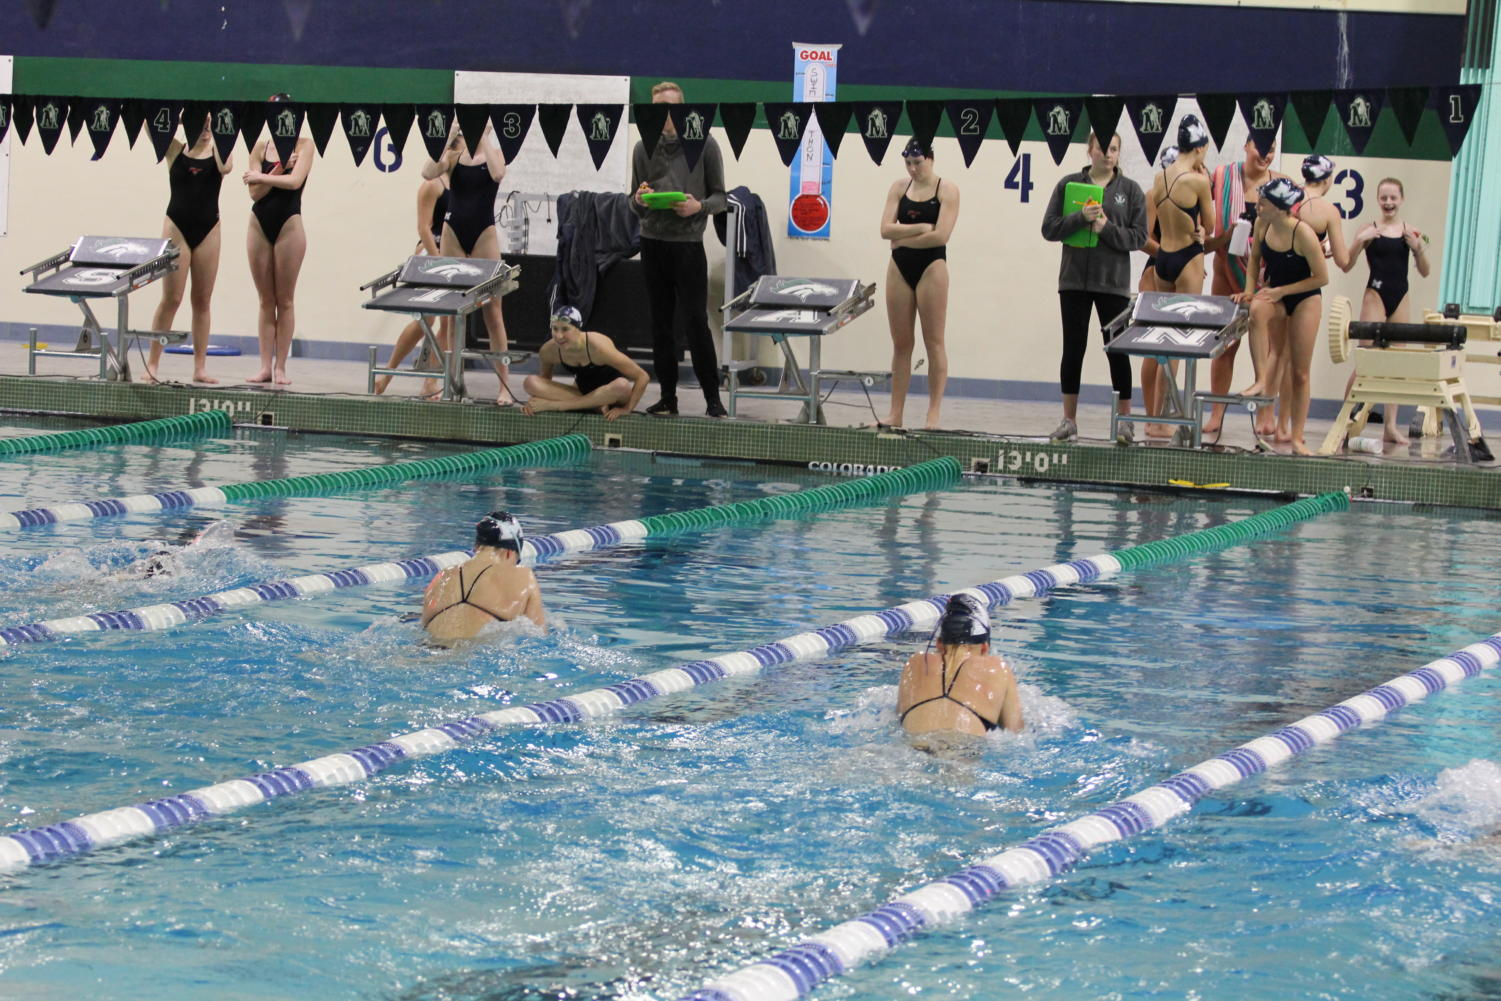 Senior+Allyson+Cochran+and+sophomore+Haley+Hume+swim+side+by+side.+Usually+team+members+are+not+allowed+to+swim+in+adjacent+lanes%2C+but+coaches+can+request+a+%E2%80%9CJV+heat%E2%80%9D+where+team+members+can+swim+just+for+time+and+are+not+recorded+for+heat.+%0A